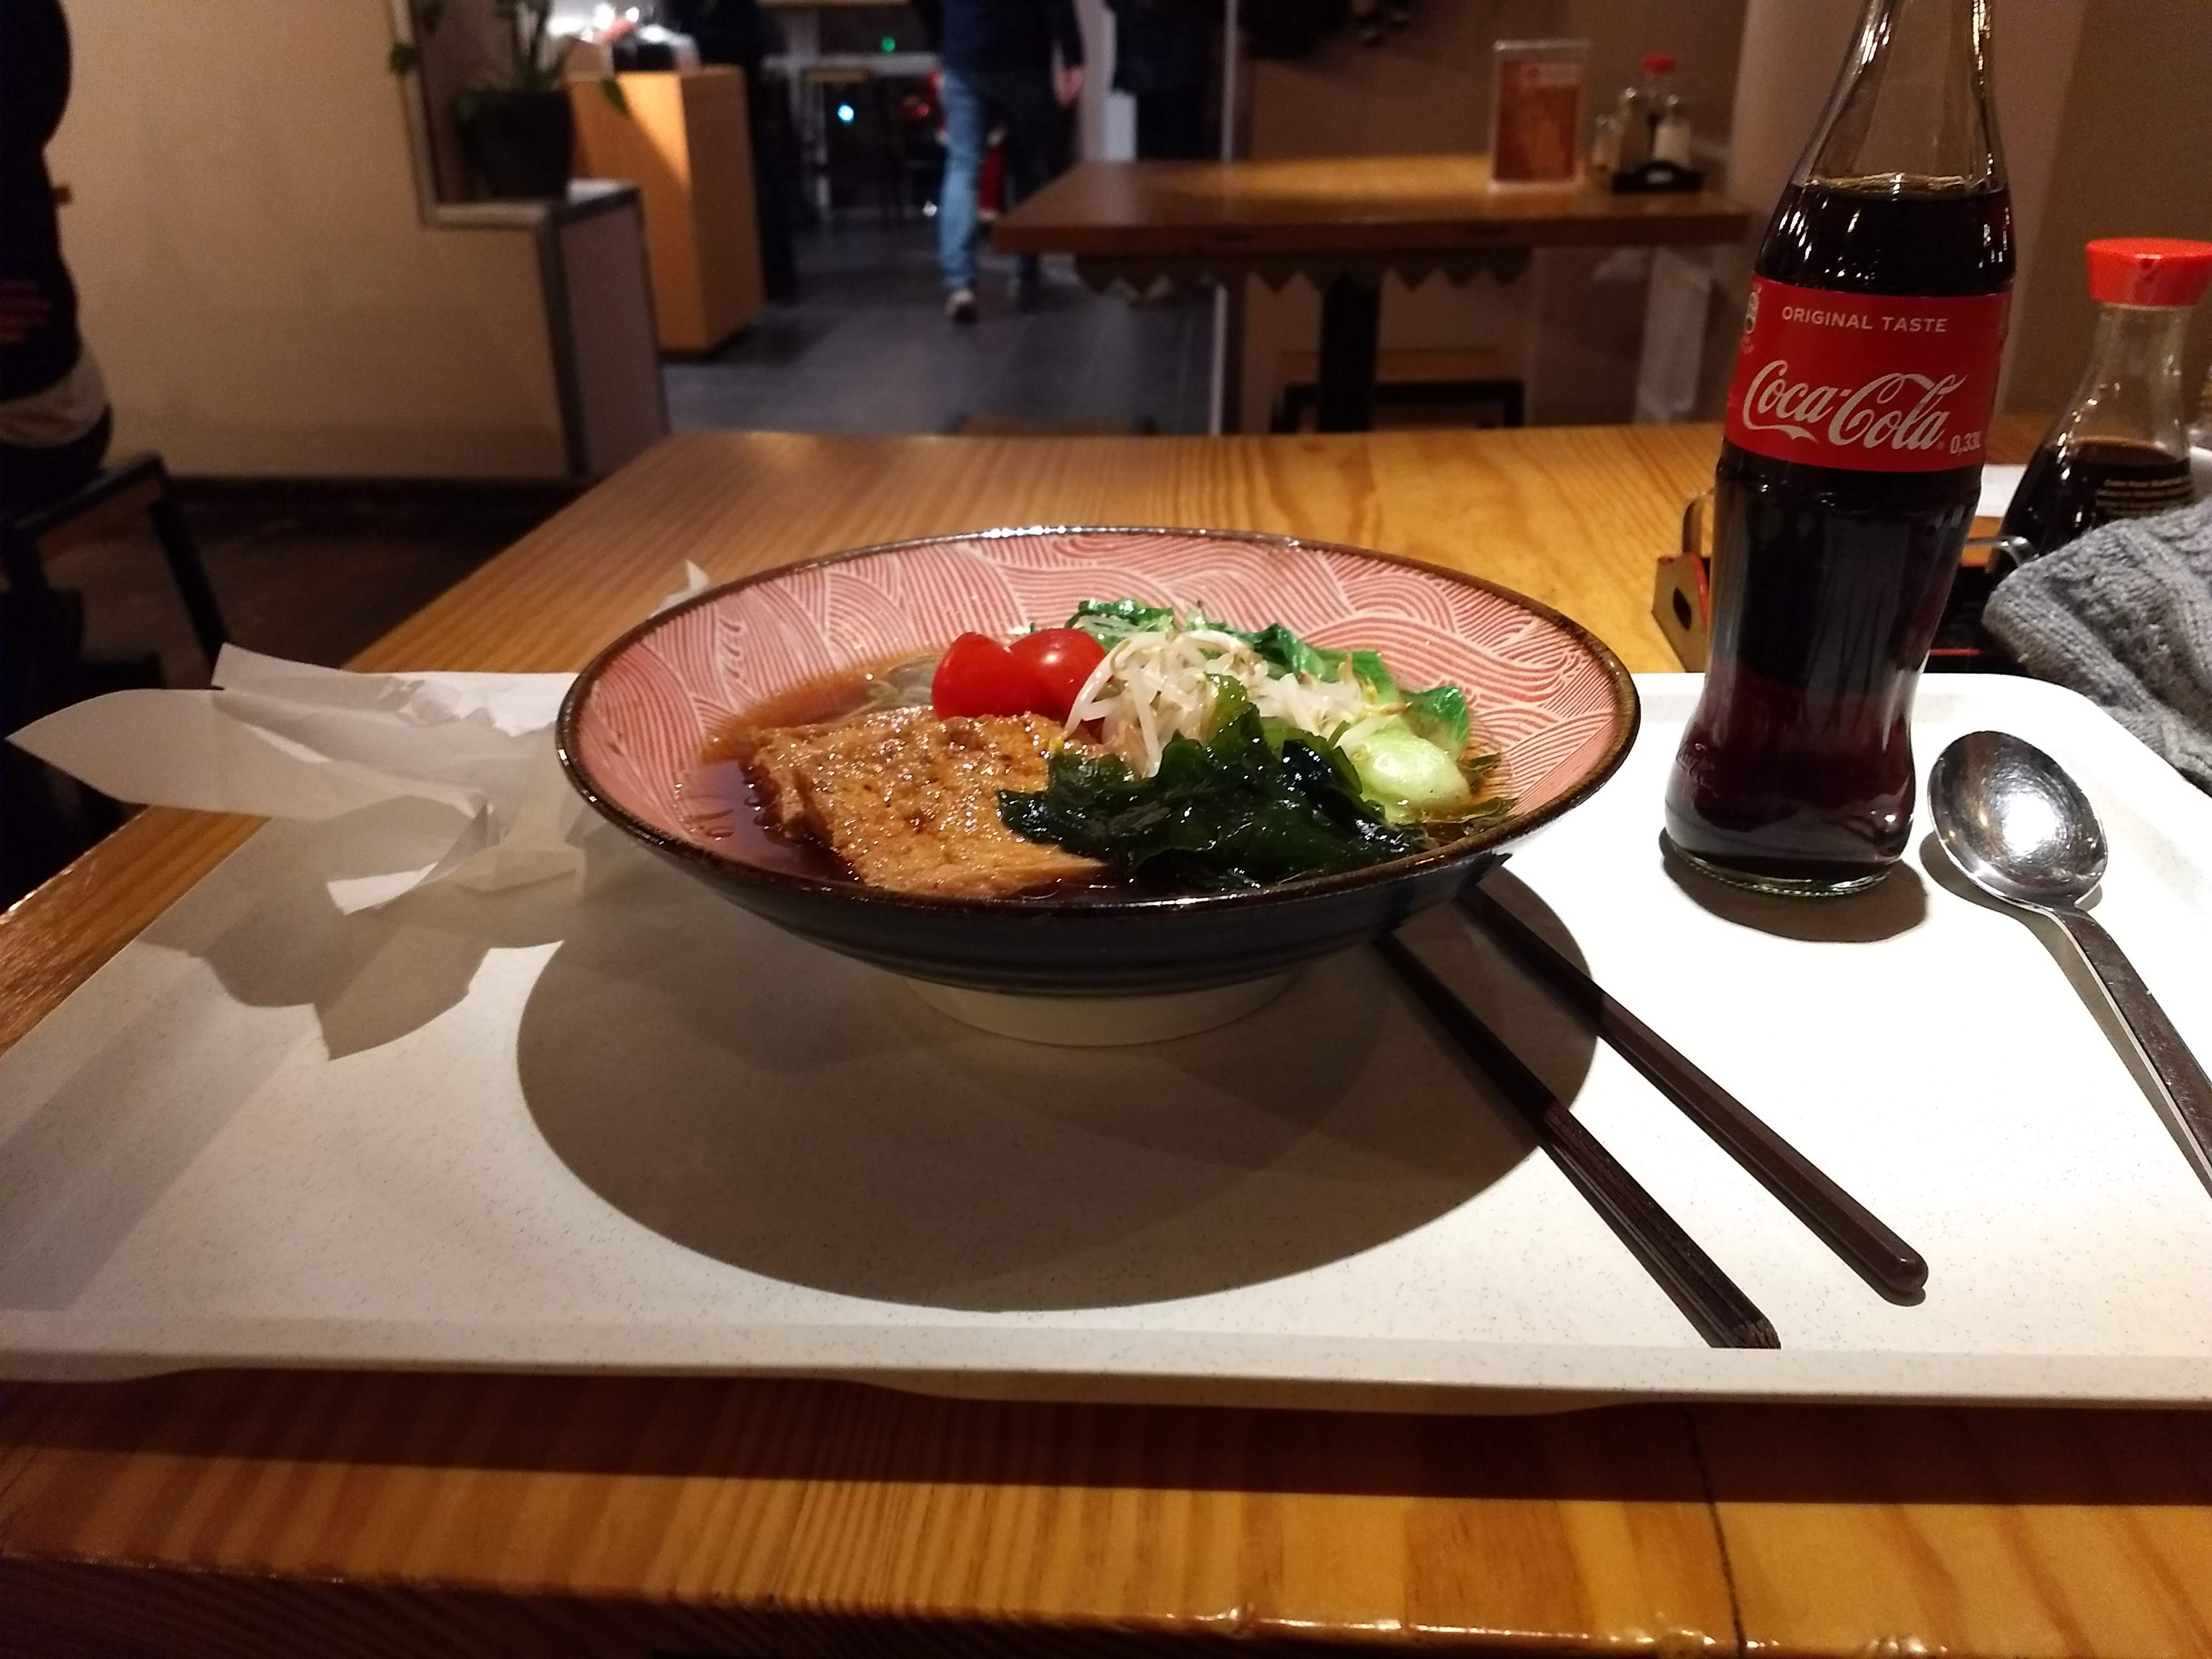 A bowl of sohyu and a bottle of coke.